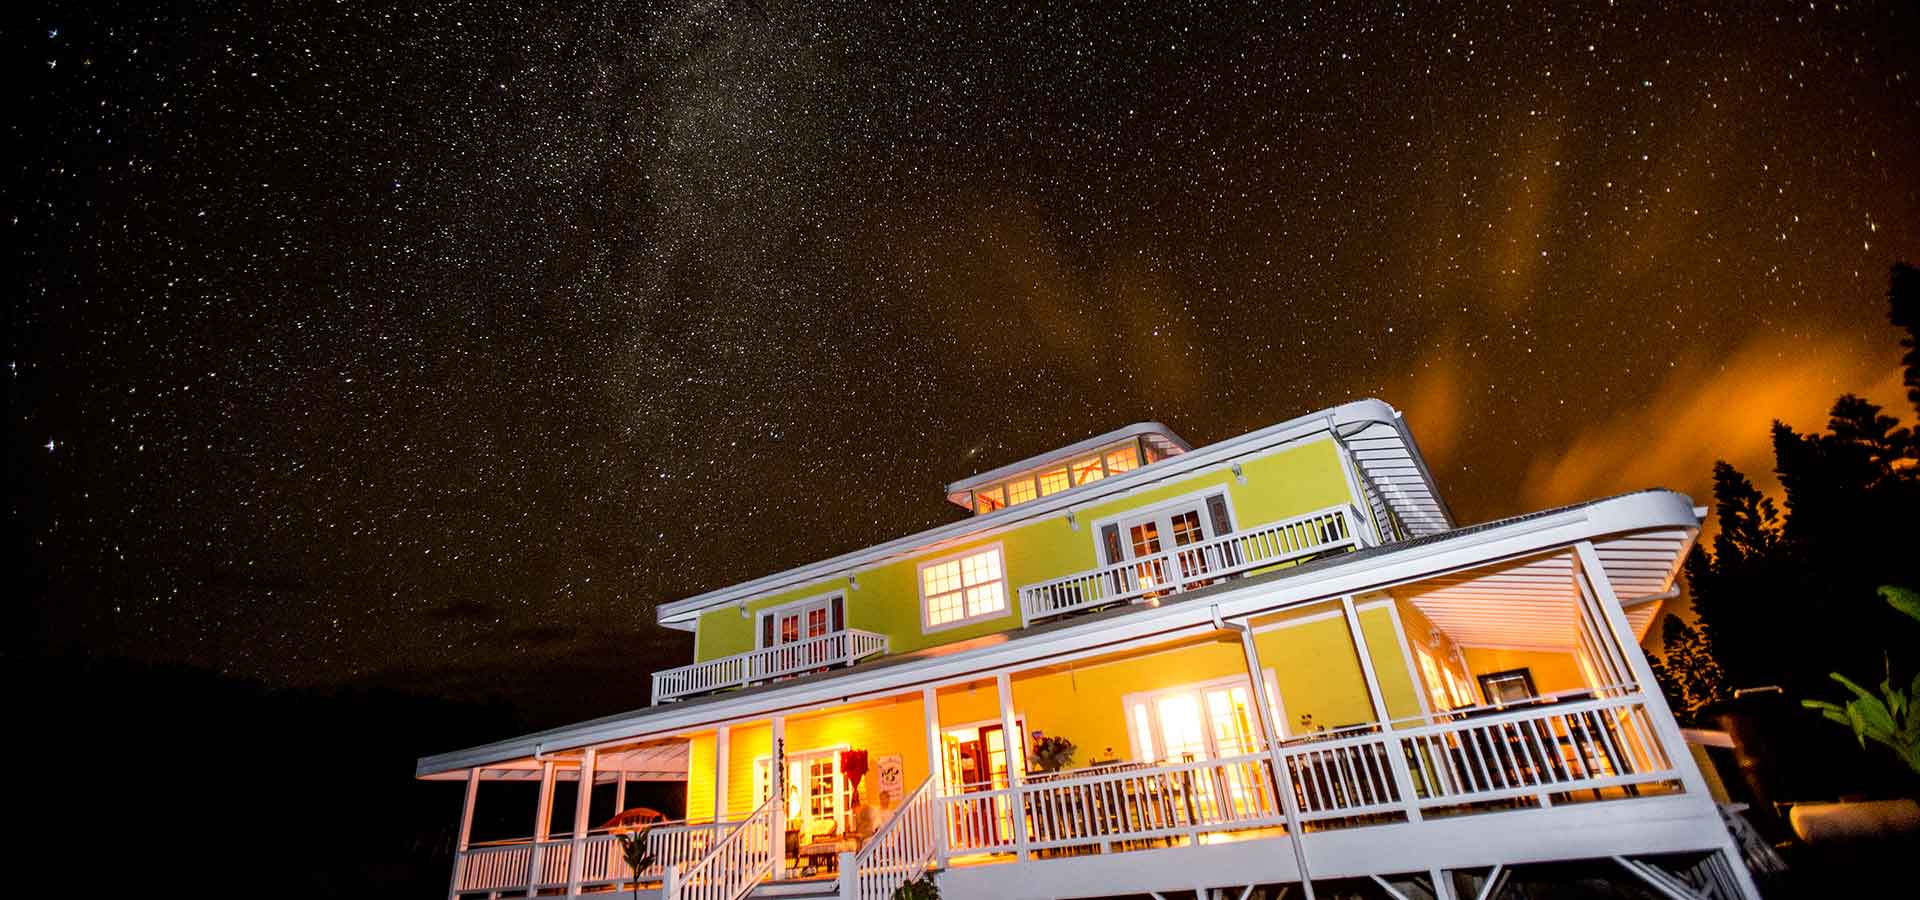 What a night sky at Kalaekilohana Inn & Retreat at Na`alehu, Hawaii